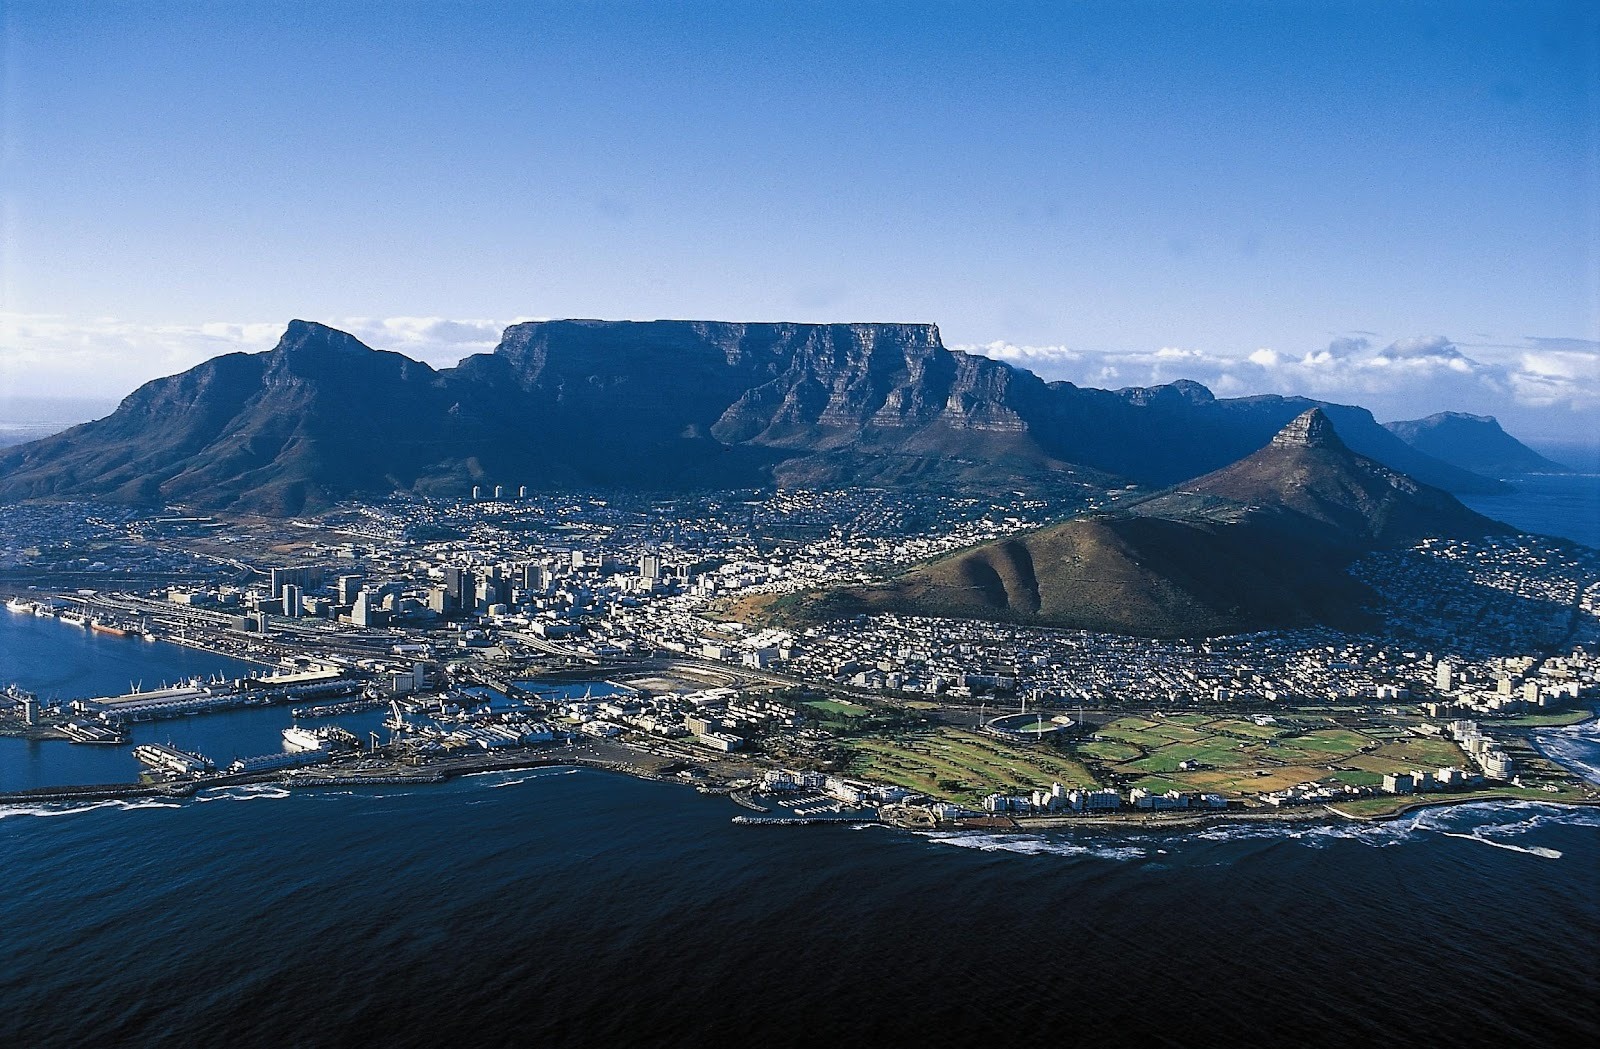 C:\Users\rwil313\Desktop\Table Mountain.jpg